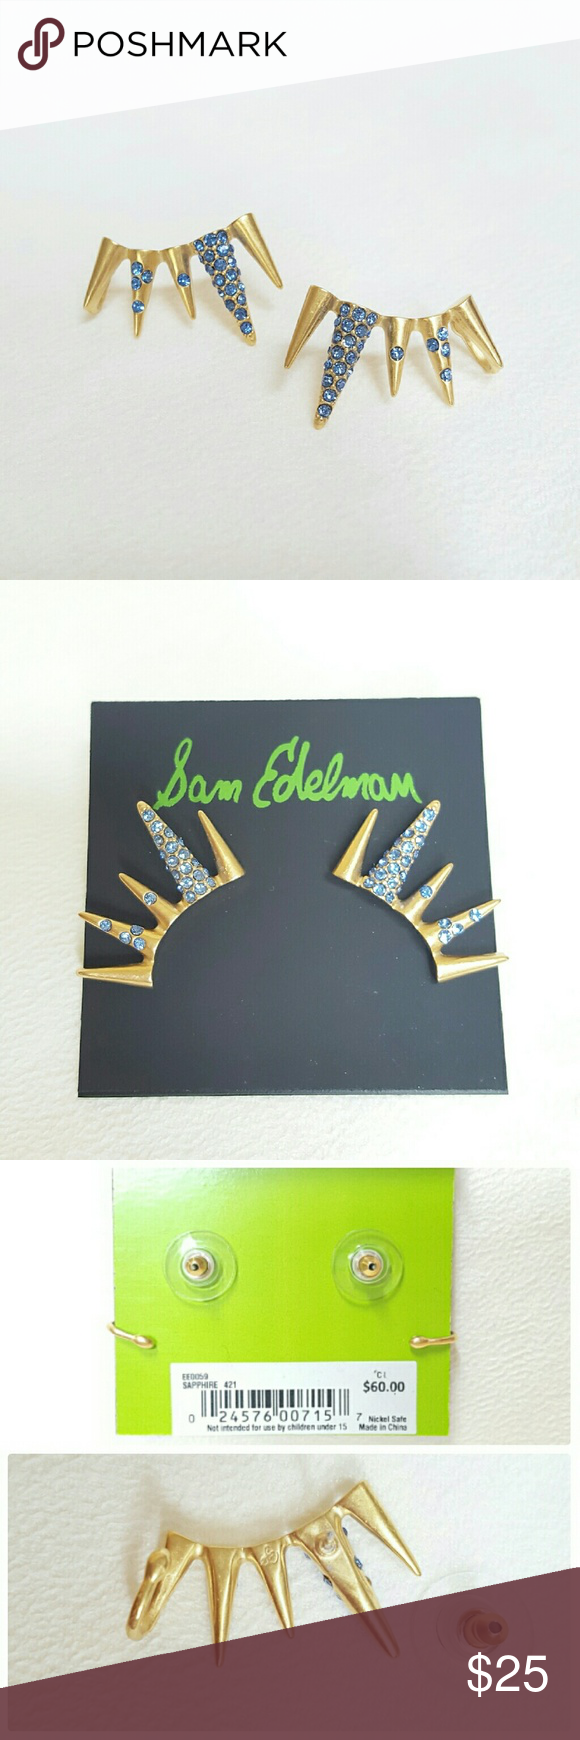 Sam Edelman Pave Spike Earrings Scattered crystals brighten a pair of bold, spiked ear cuffs perfect for making a memorable impression. Post and cuff back. Color: Sapphire (gold tone with blue crystals). Last picture model reference. NWT! PRICE FIRM. SOLD OUT! 🚫 NO TRADE/HOLD POSH TRANSACTION ONLY! Sam Edelman Jewelry Earrings